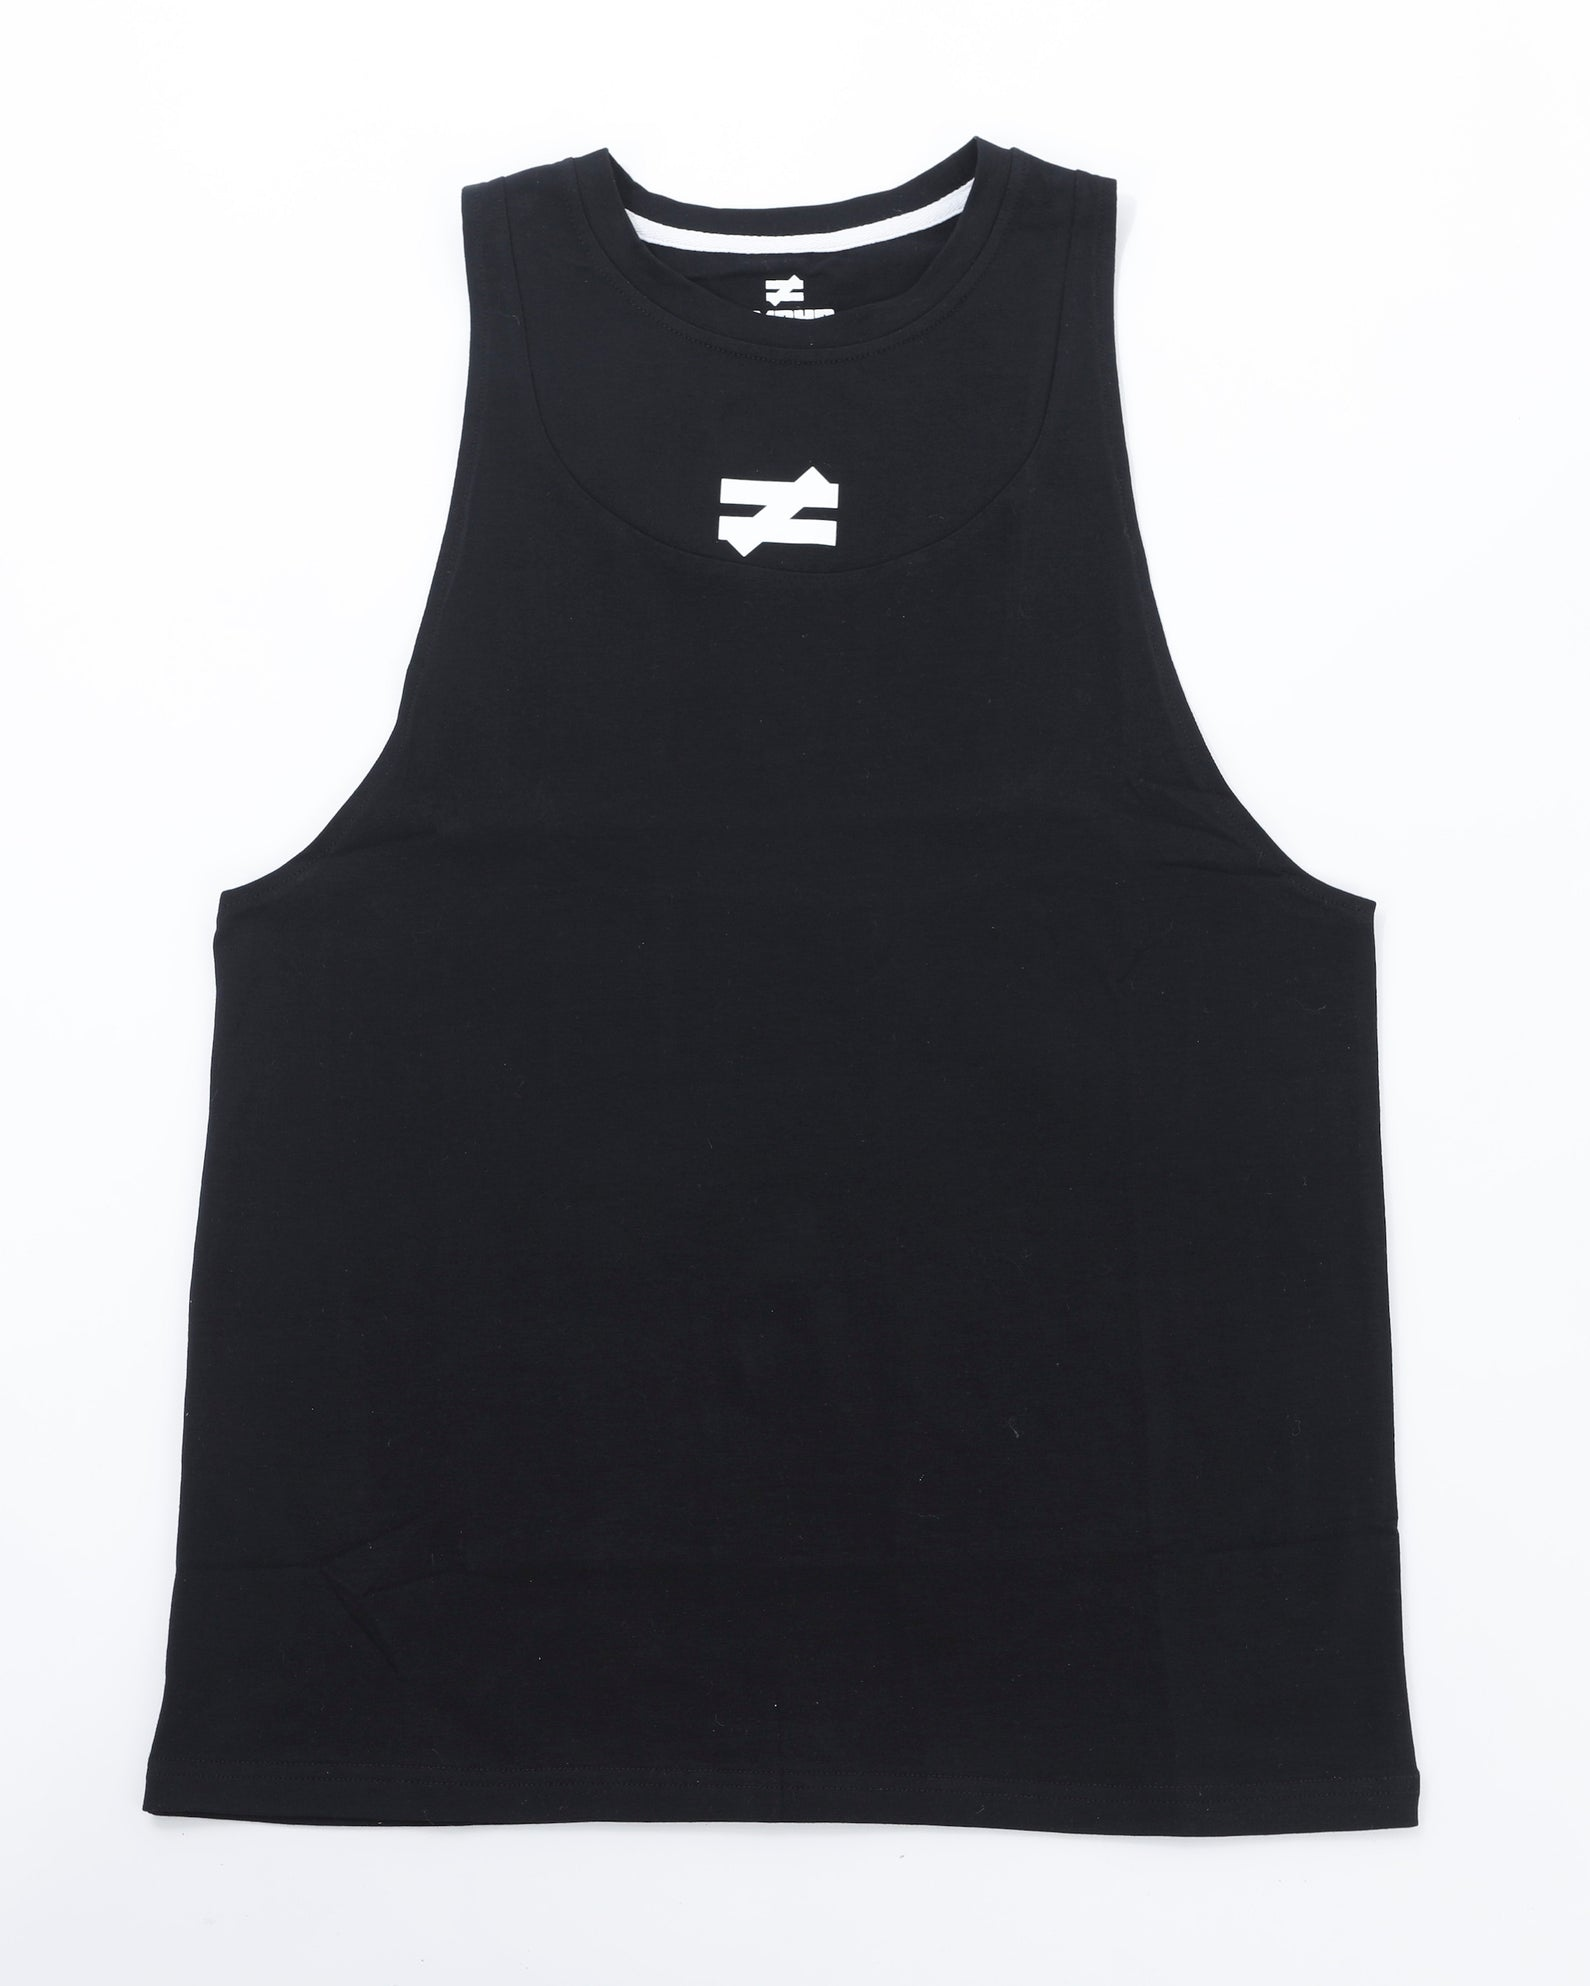 Zyphr Function Tank in Obsidian Black